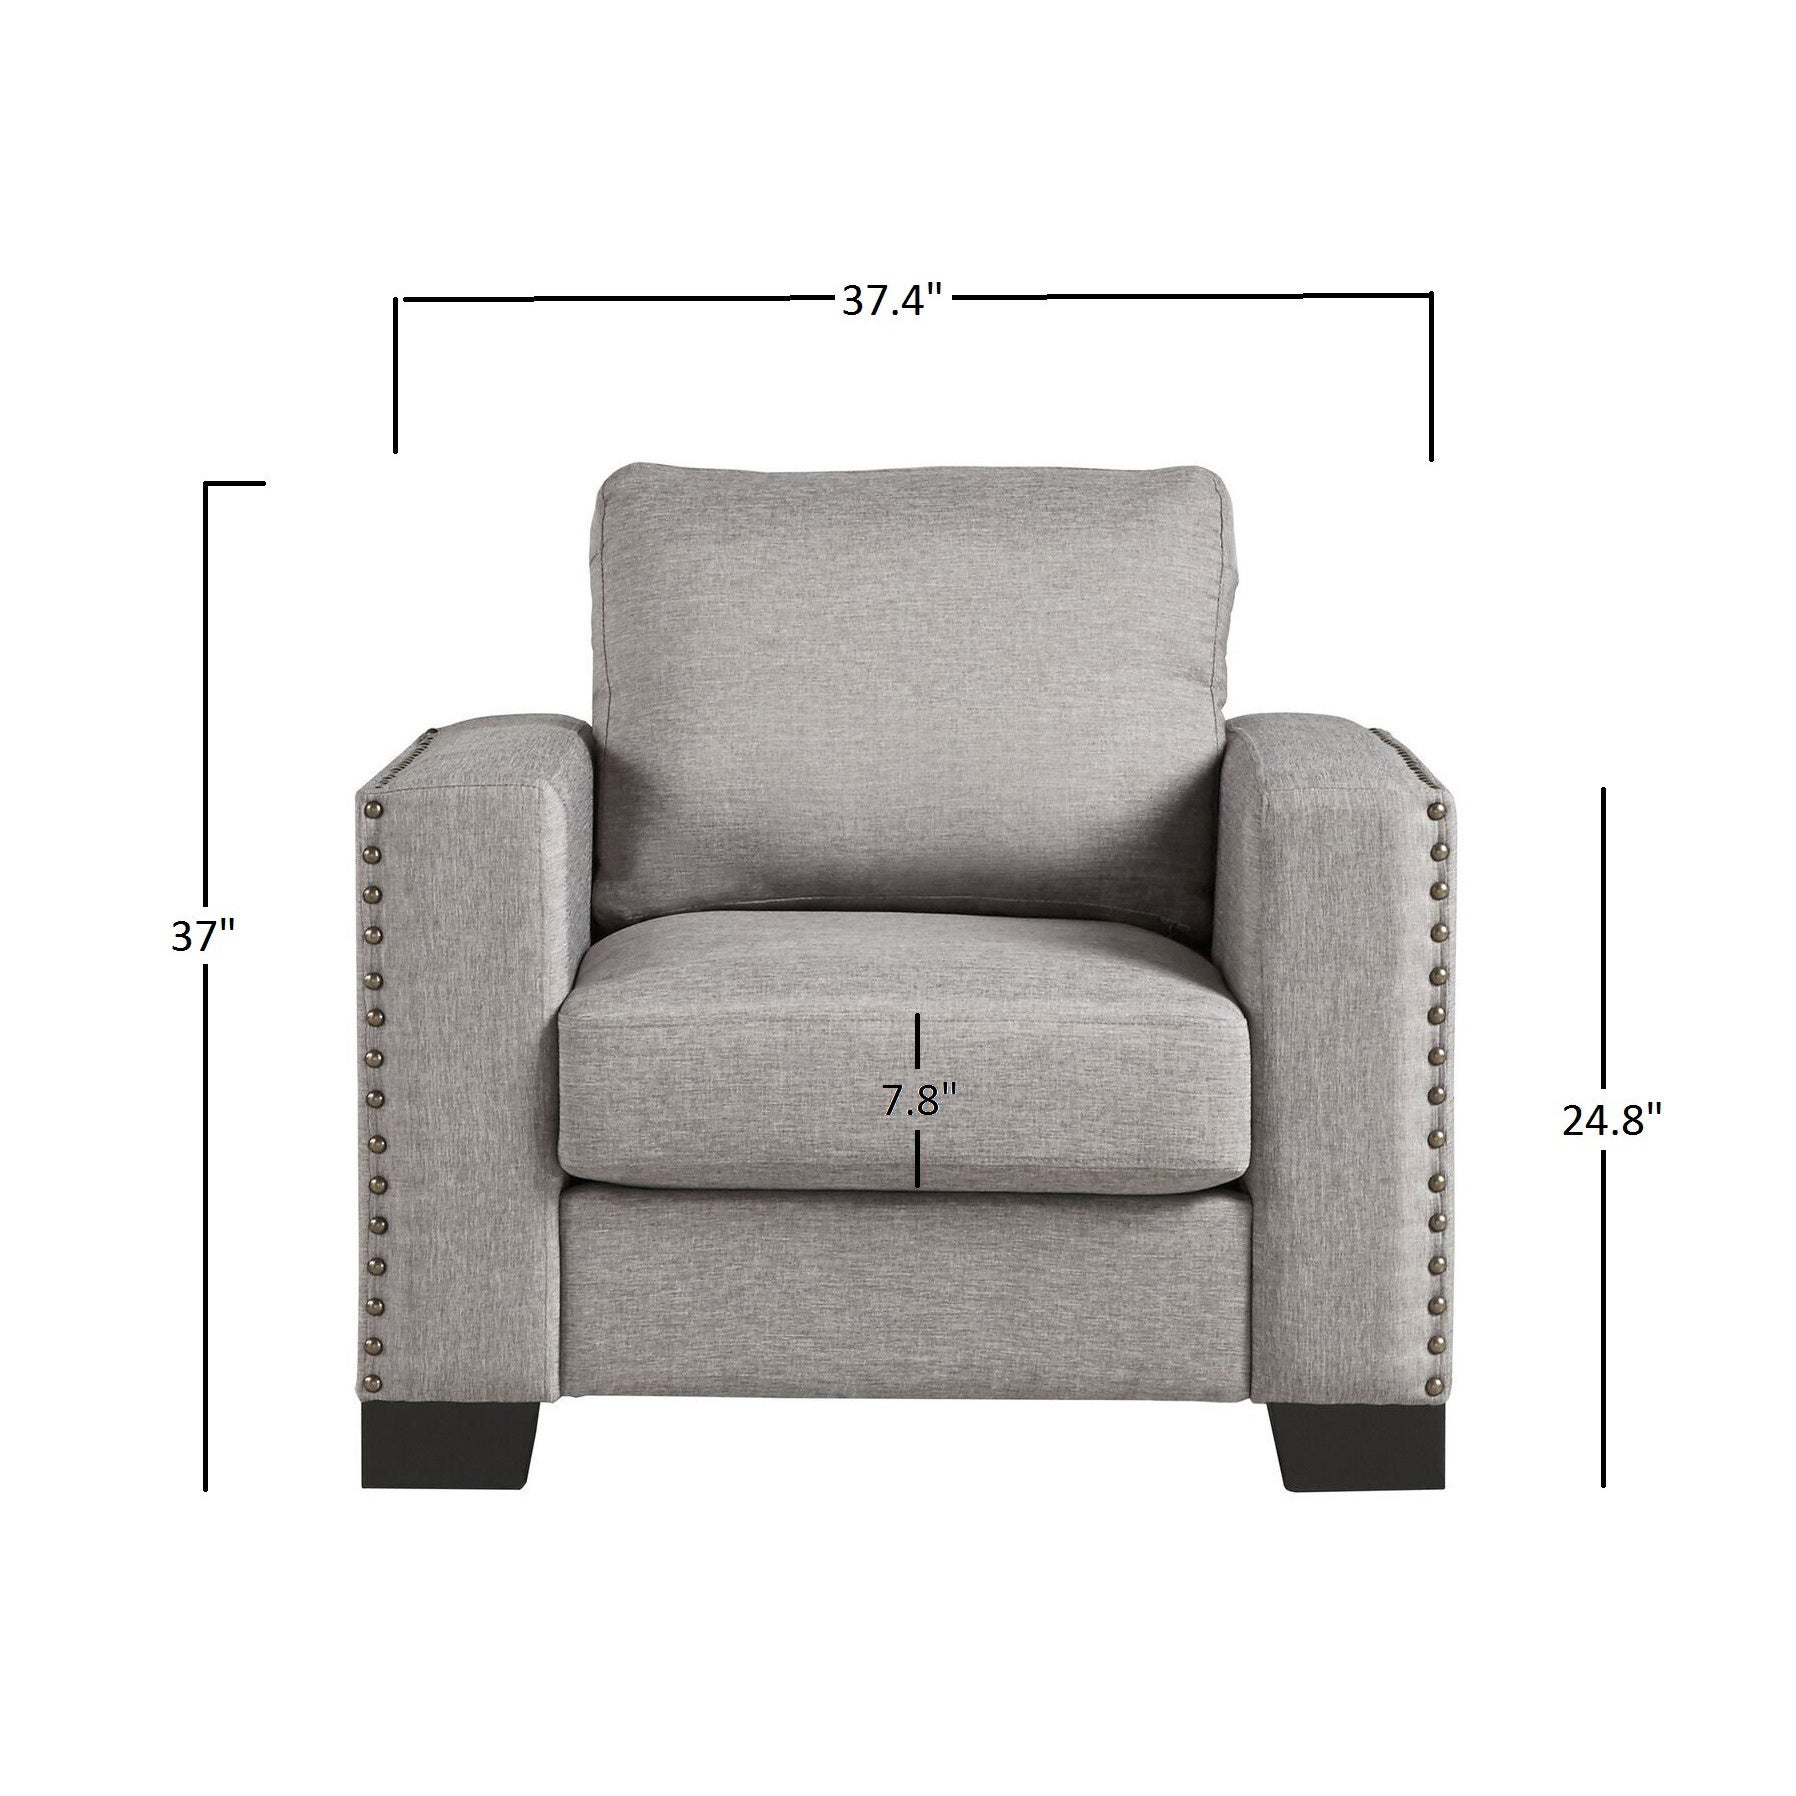 Torrington Linen Nailhead Track Arm Accent Chair by iNSPIRE Q Classic -  Free Shipping Today - Overstock.com - 16588549